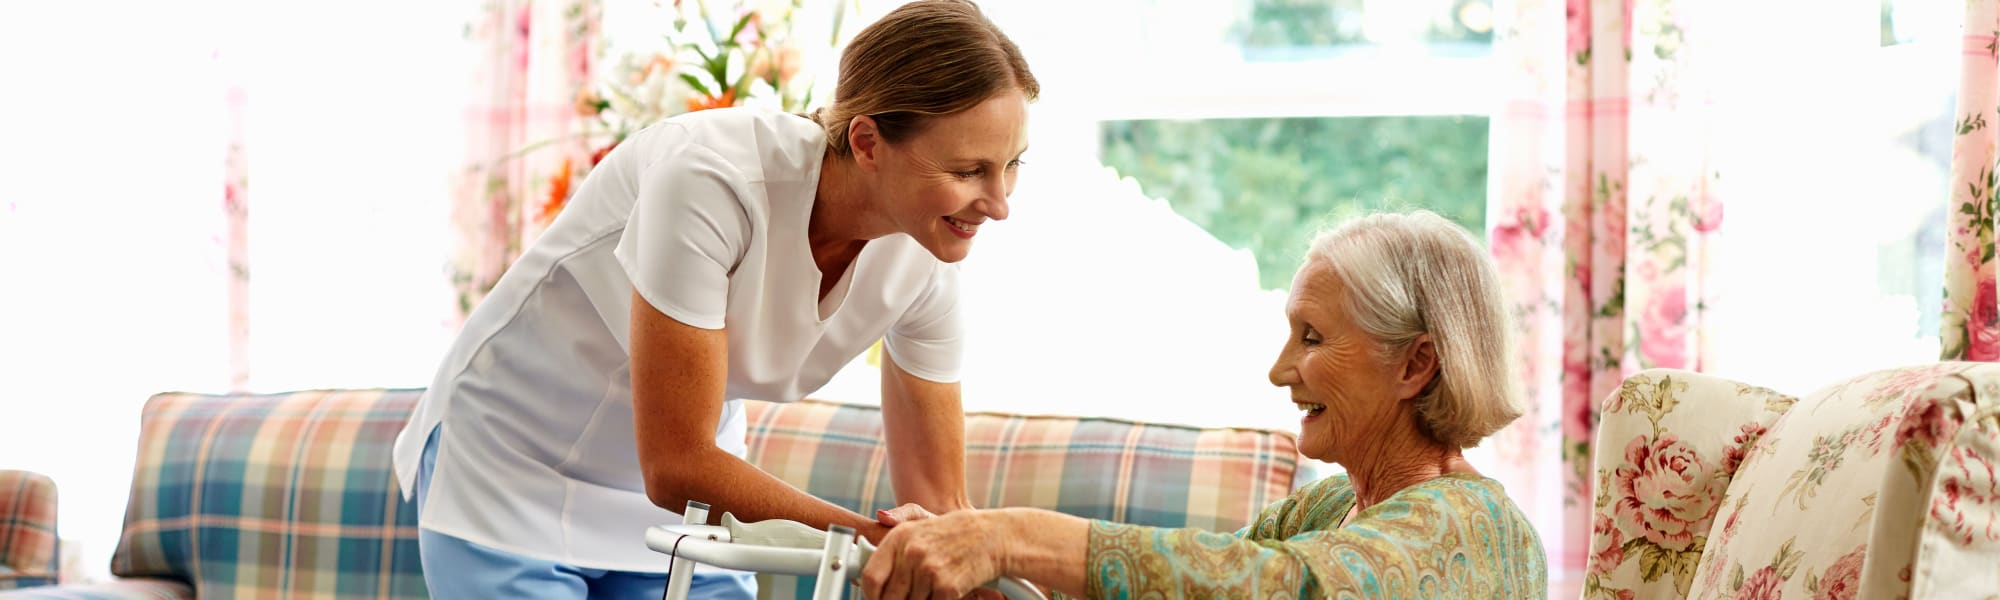 Our services at Careage Home Health in Bellevue, Washington.